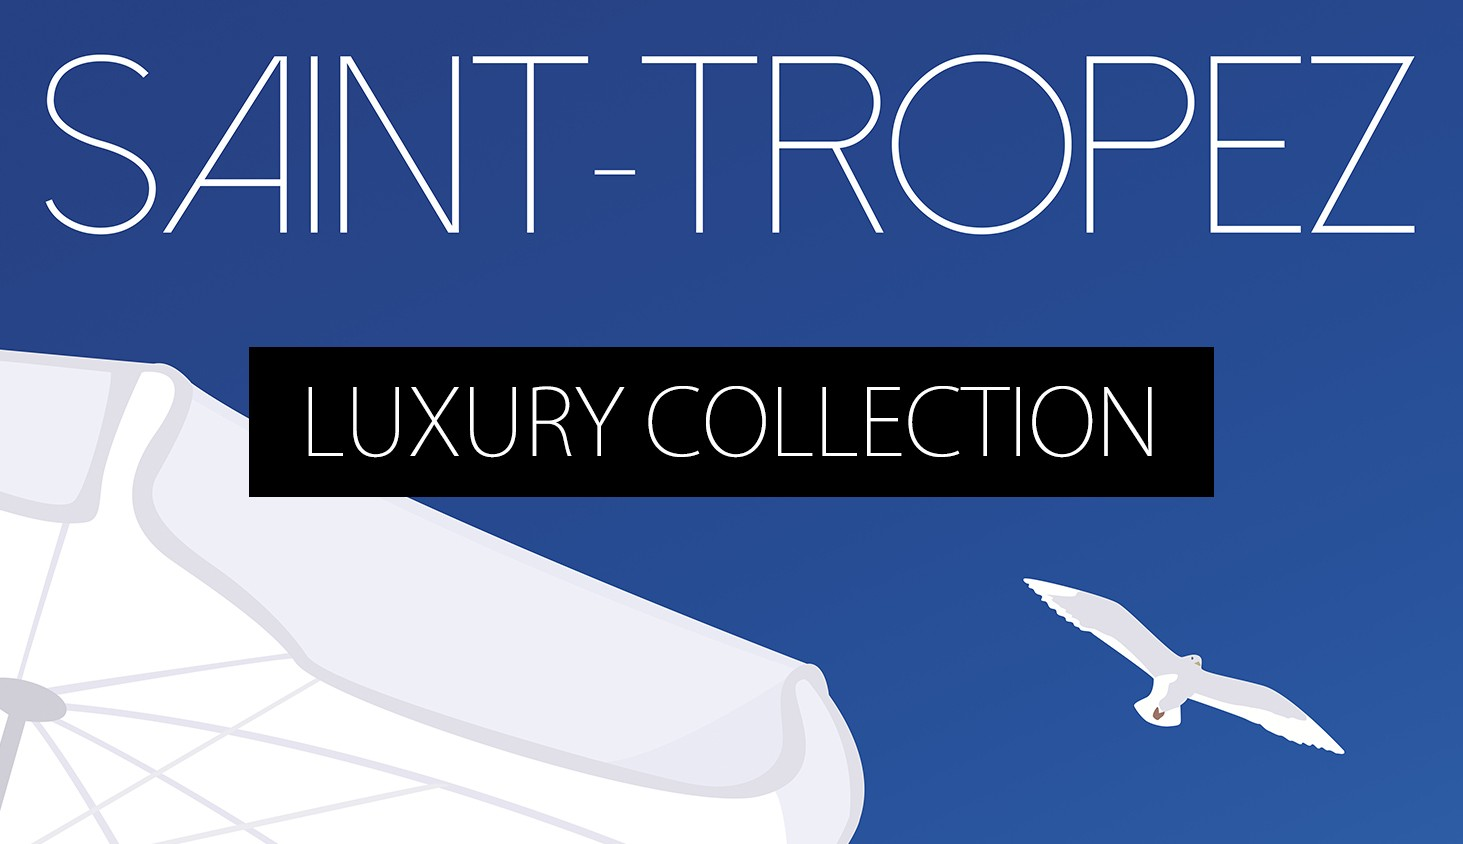 Luxury Collection Saint Tropez